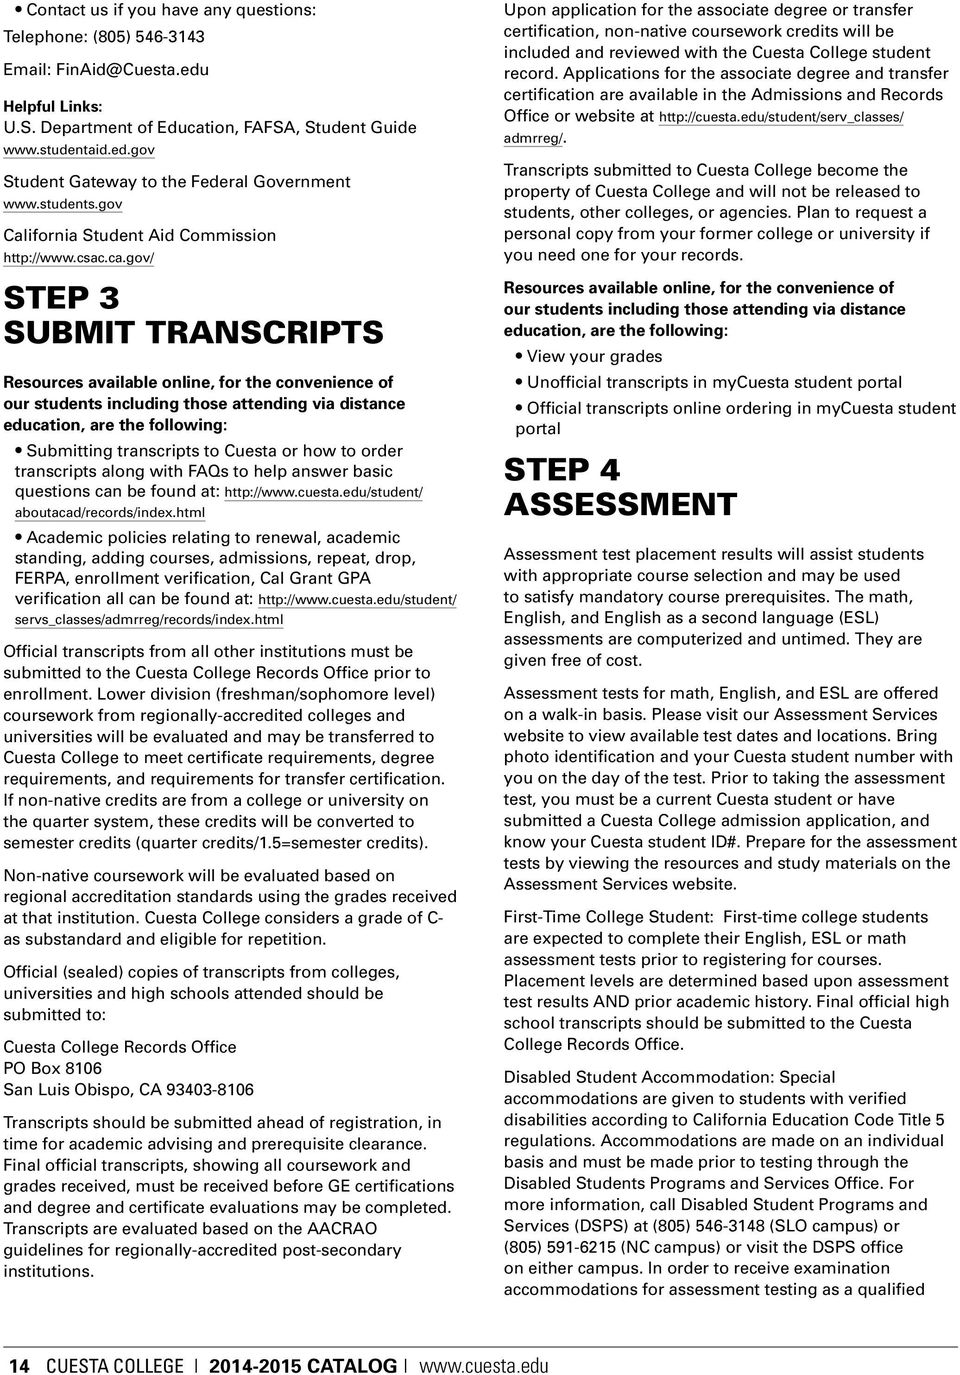 gov/ Step 3 Submit Transcripts Resources available online, for the convenience of our students including those attending via distance education, are the following: Submitting transcripts to Cuesta or